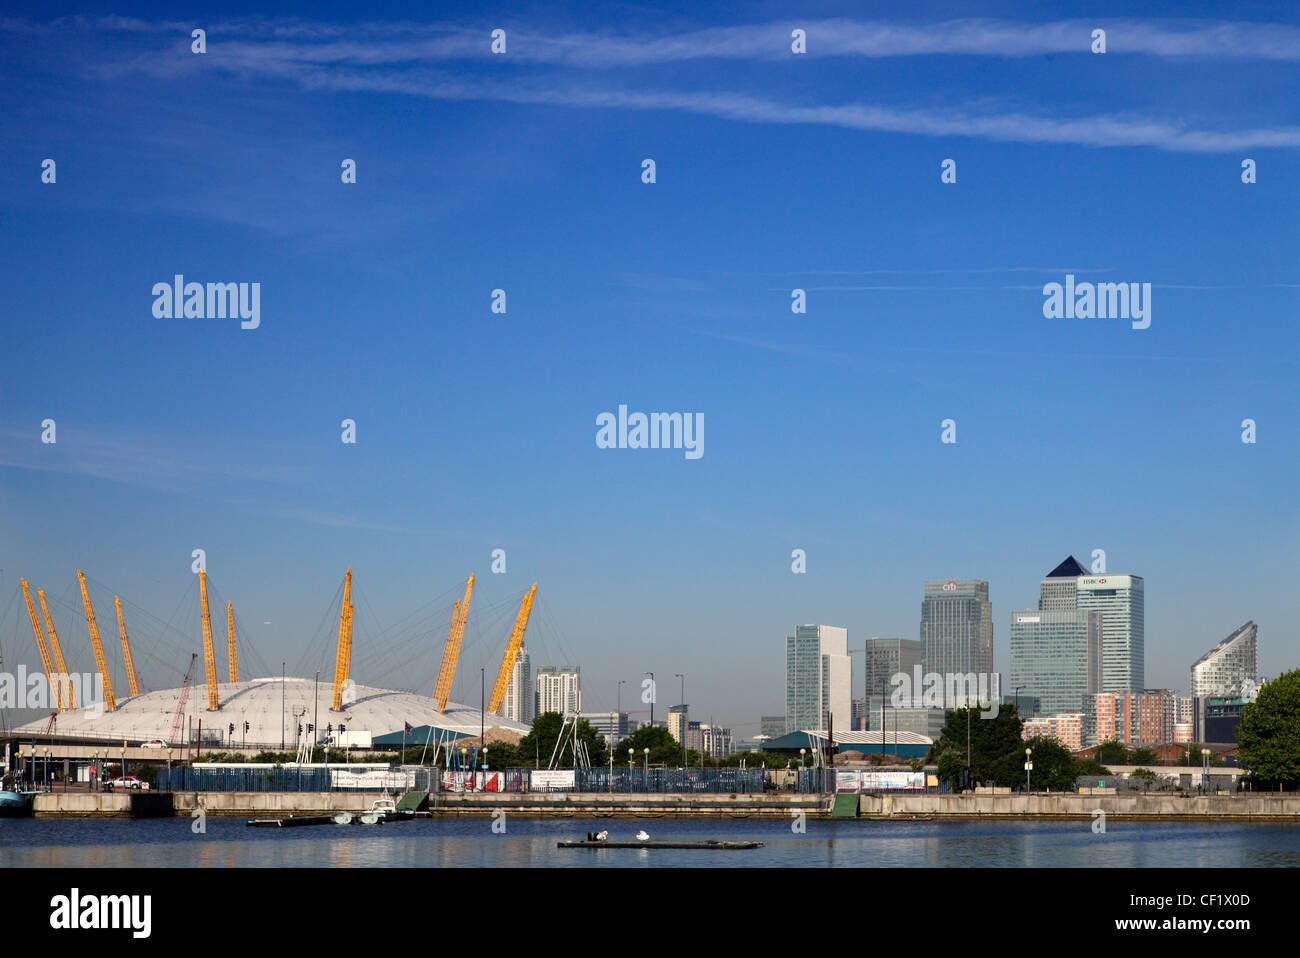 The O2 (formerly known as the Millennium Dome) on the Greenwich peninsula in South East London and the Canary Wharf - Stock Image